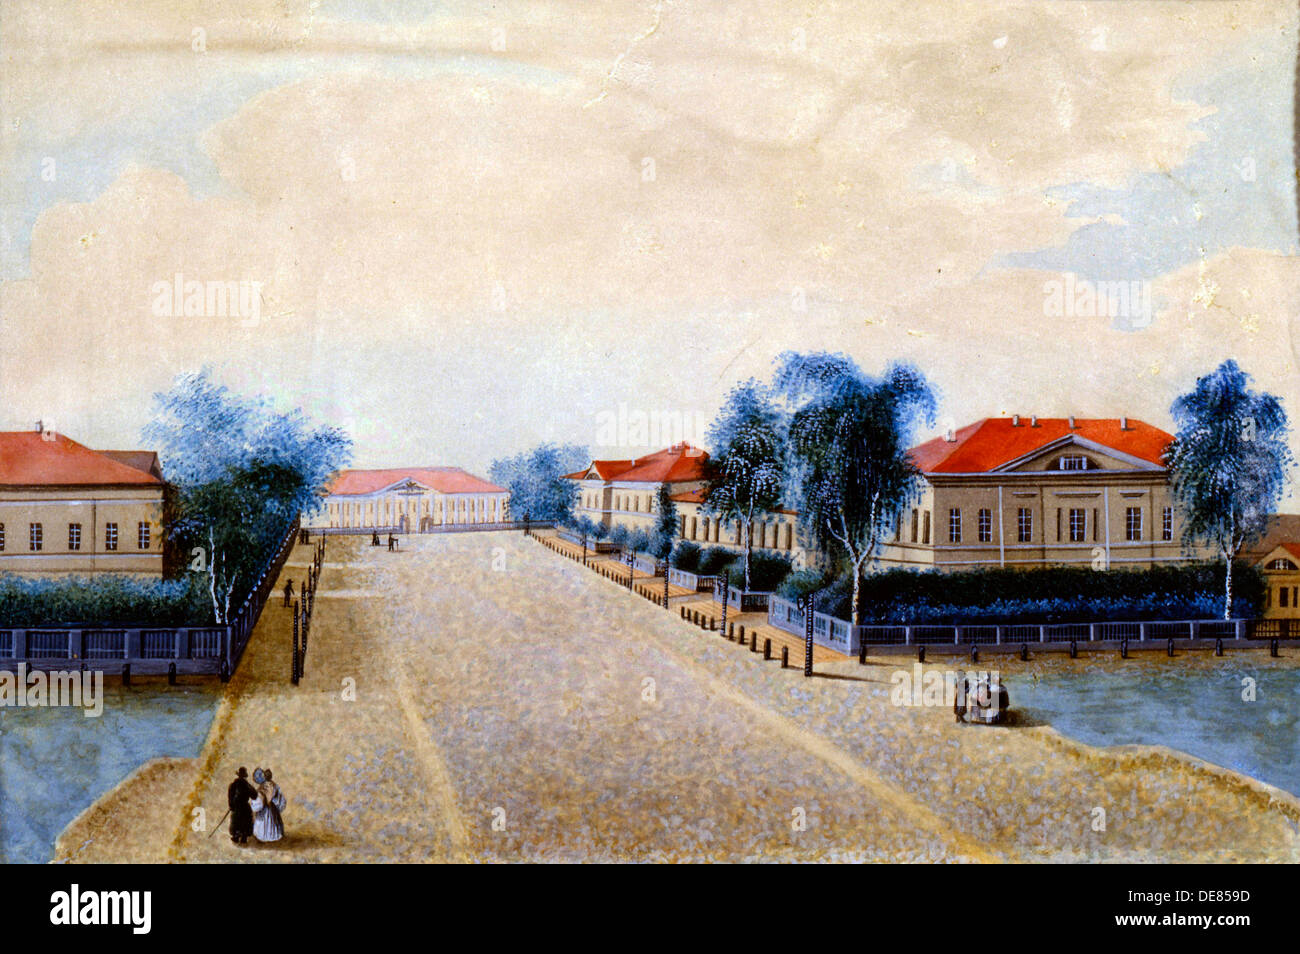 'View of the Treasury in Tver', 1830s. Artist: Russian Master - Stock Image